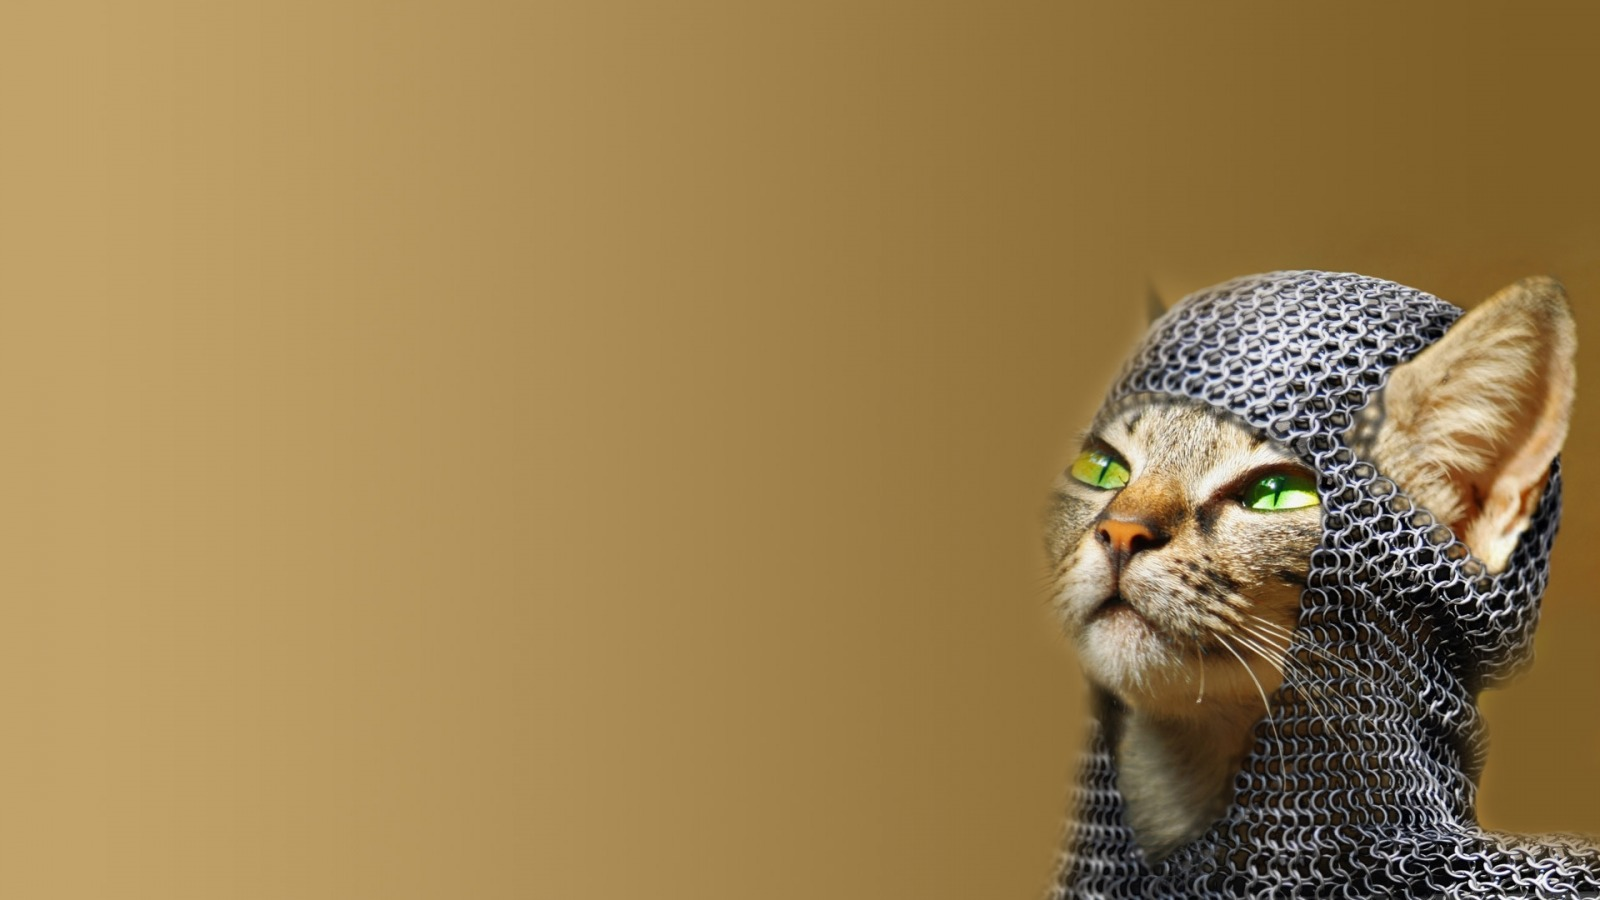 cat-chainmail-green-eyes